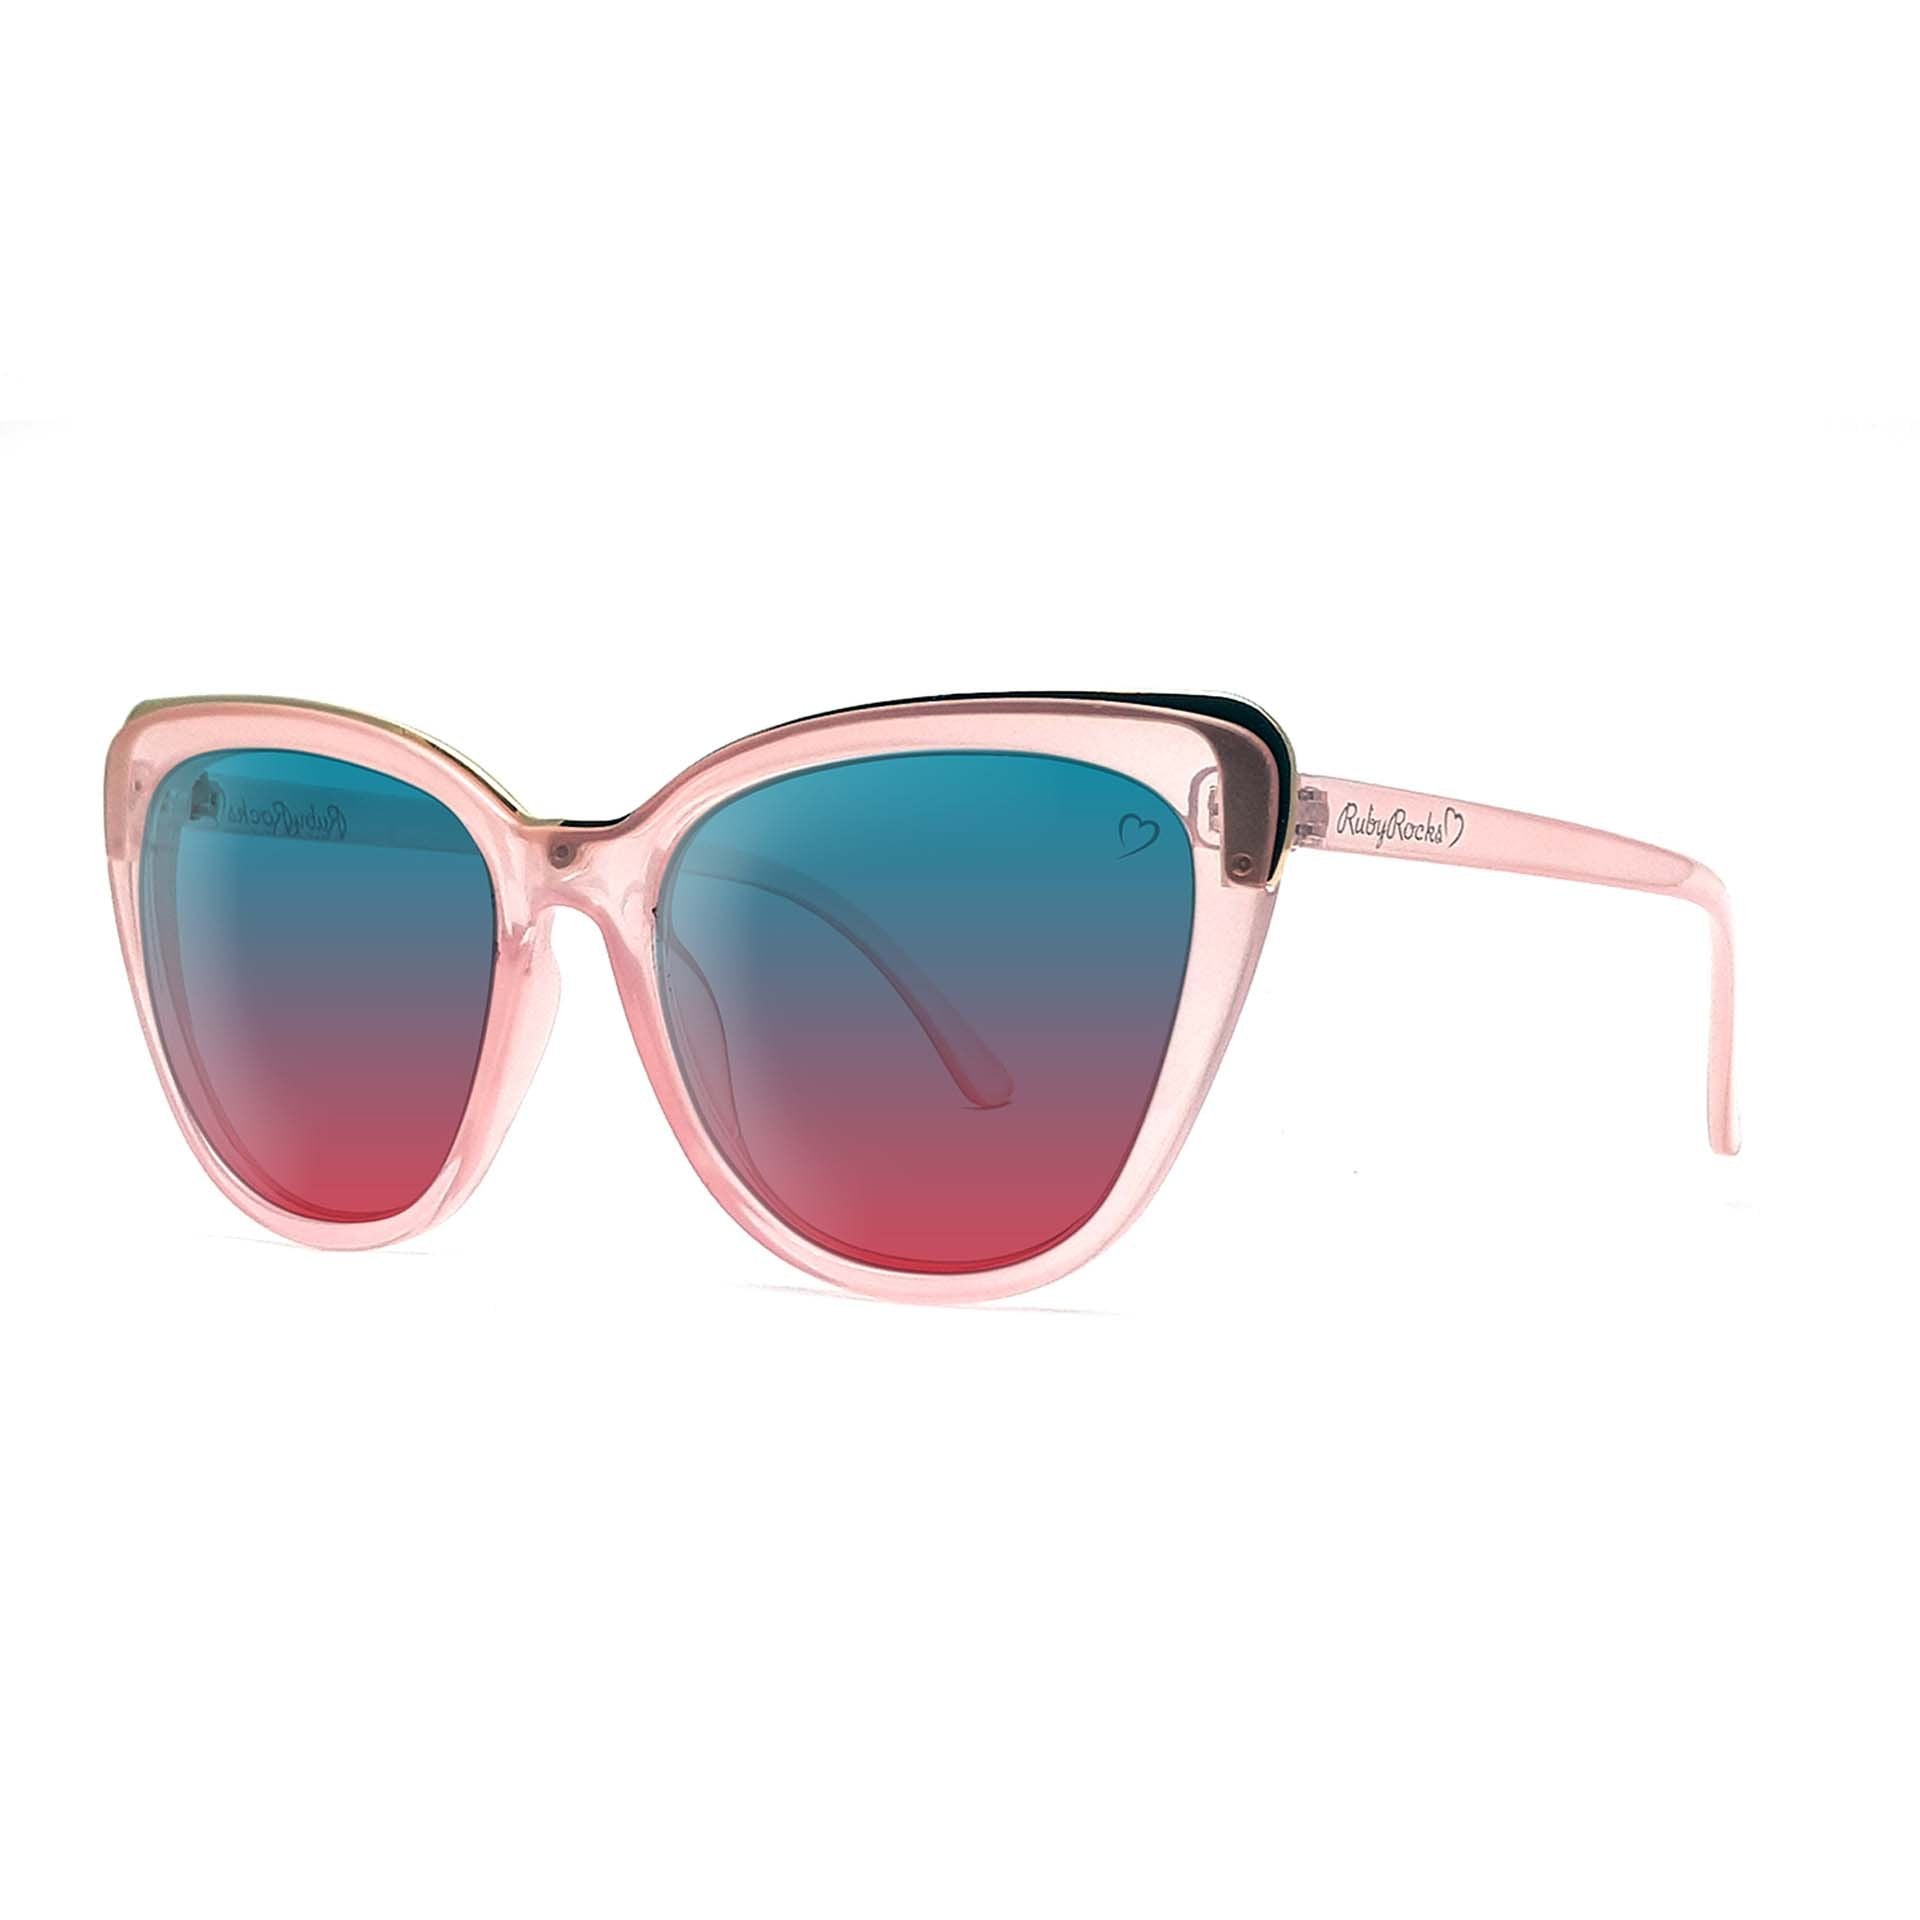 'Roseanne' Cateye Sunglasses In Crystal Pink